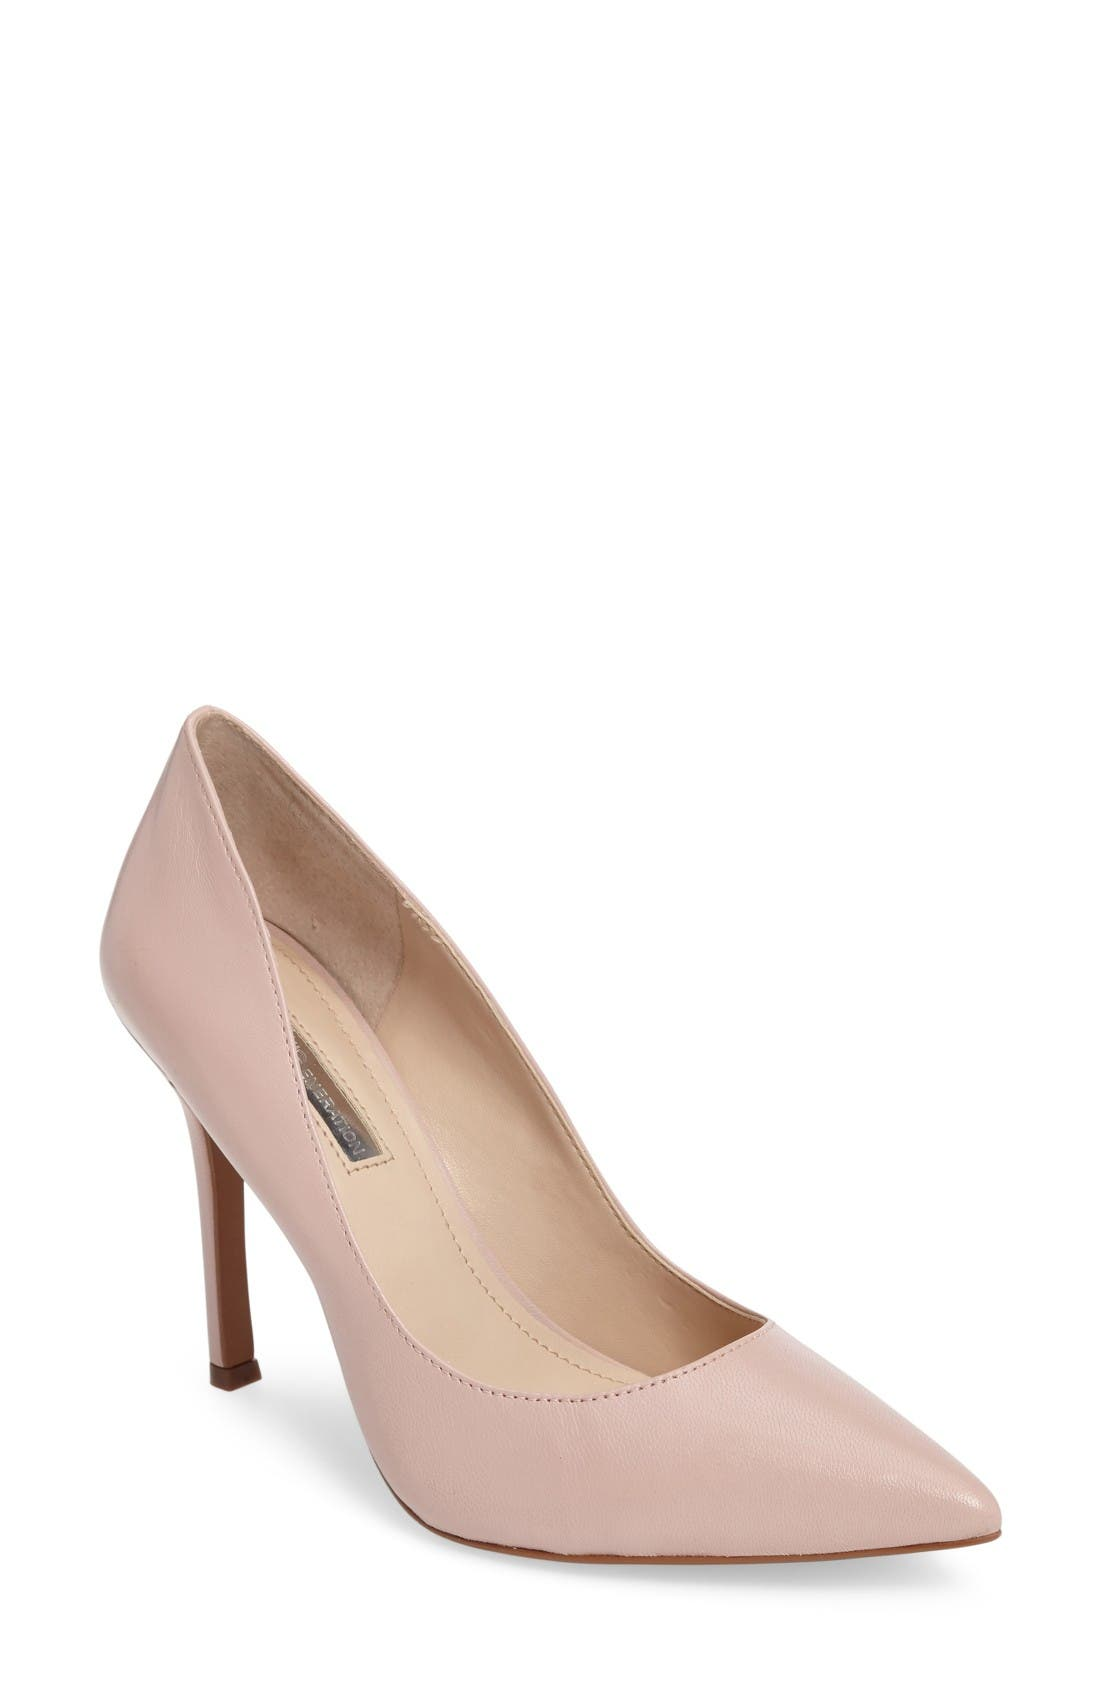 'Treasure' Pointy Toe Pump,                         Main,                         color, Bare Pink Leather